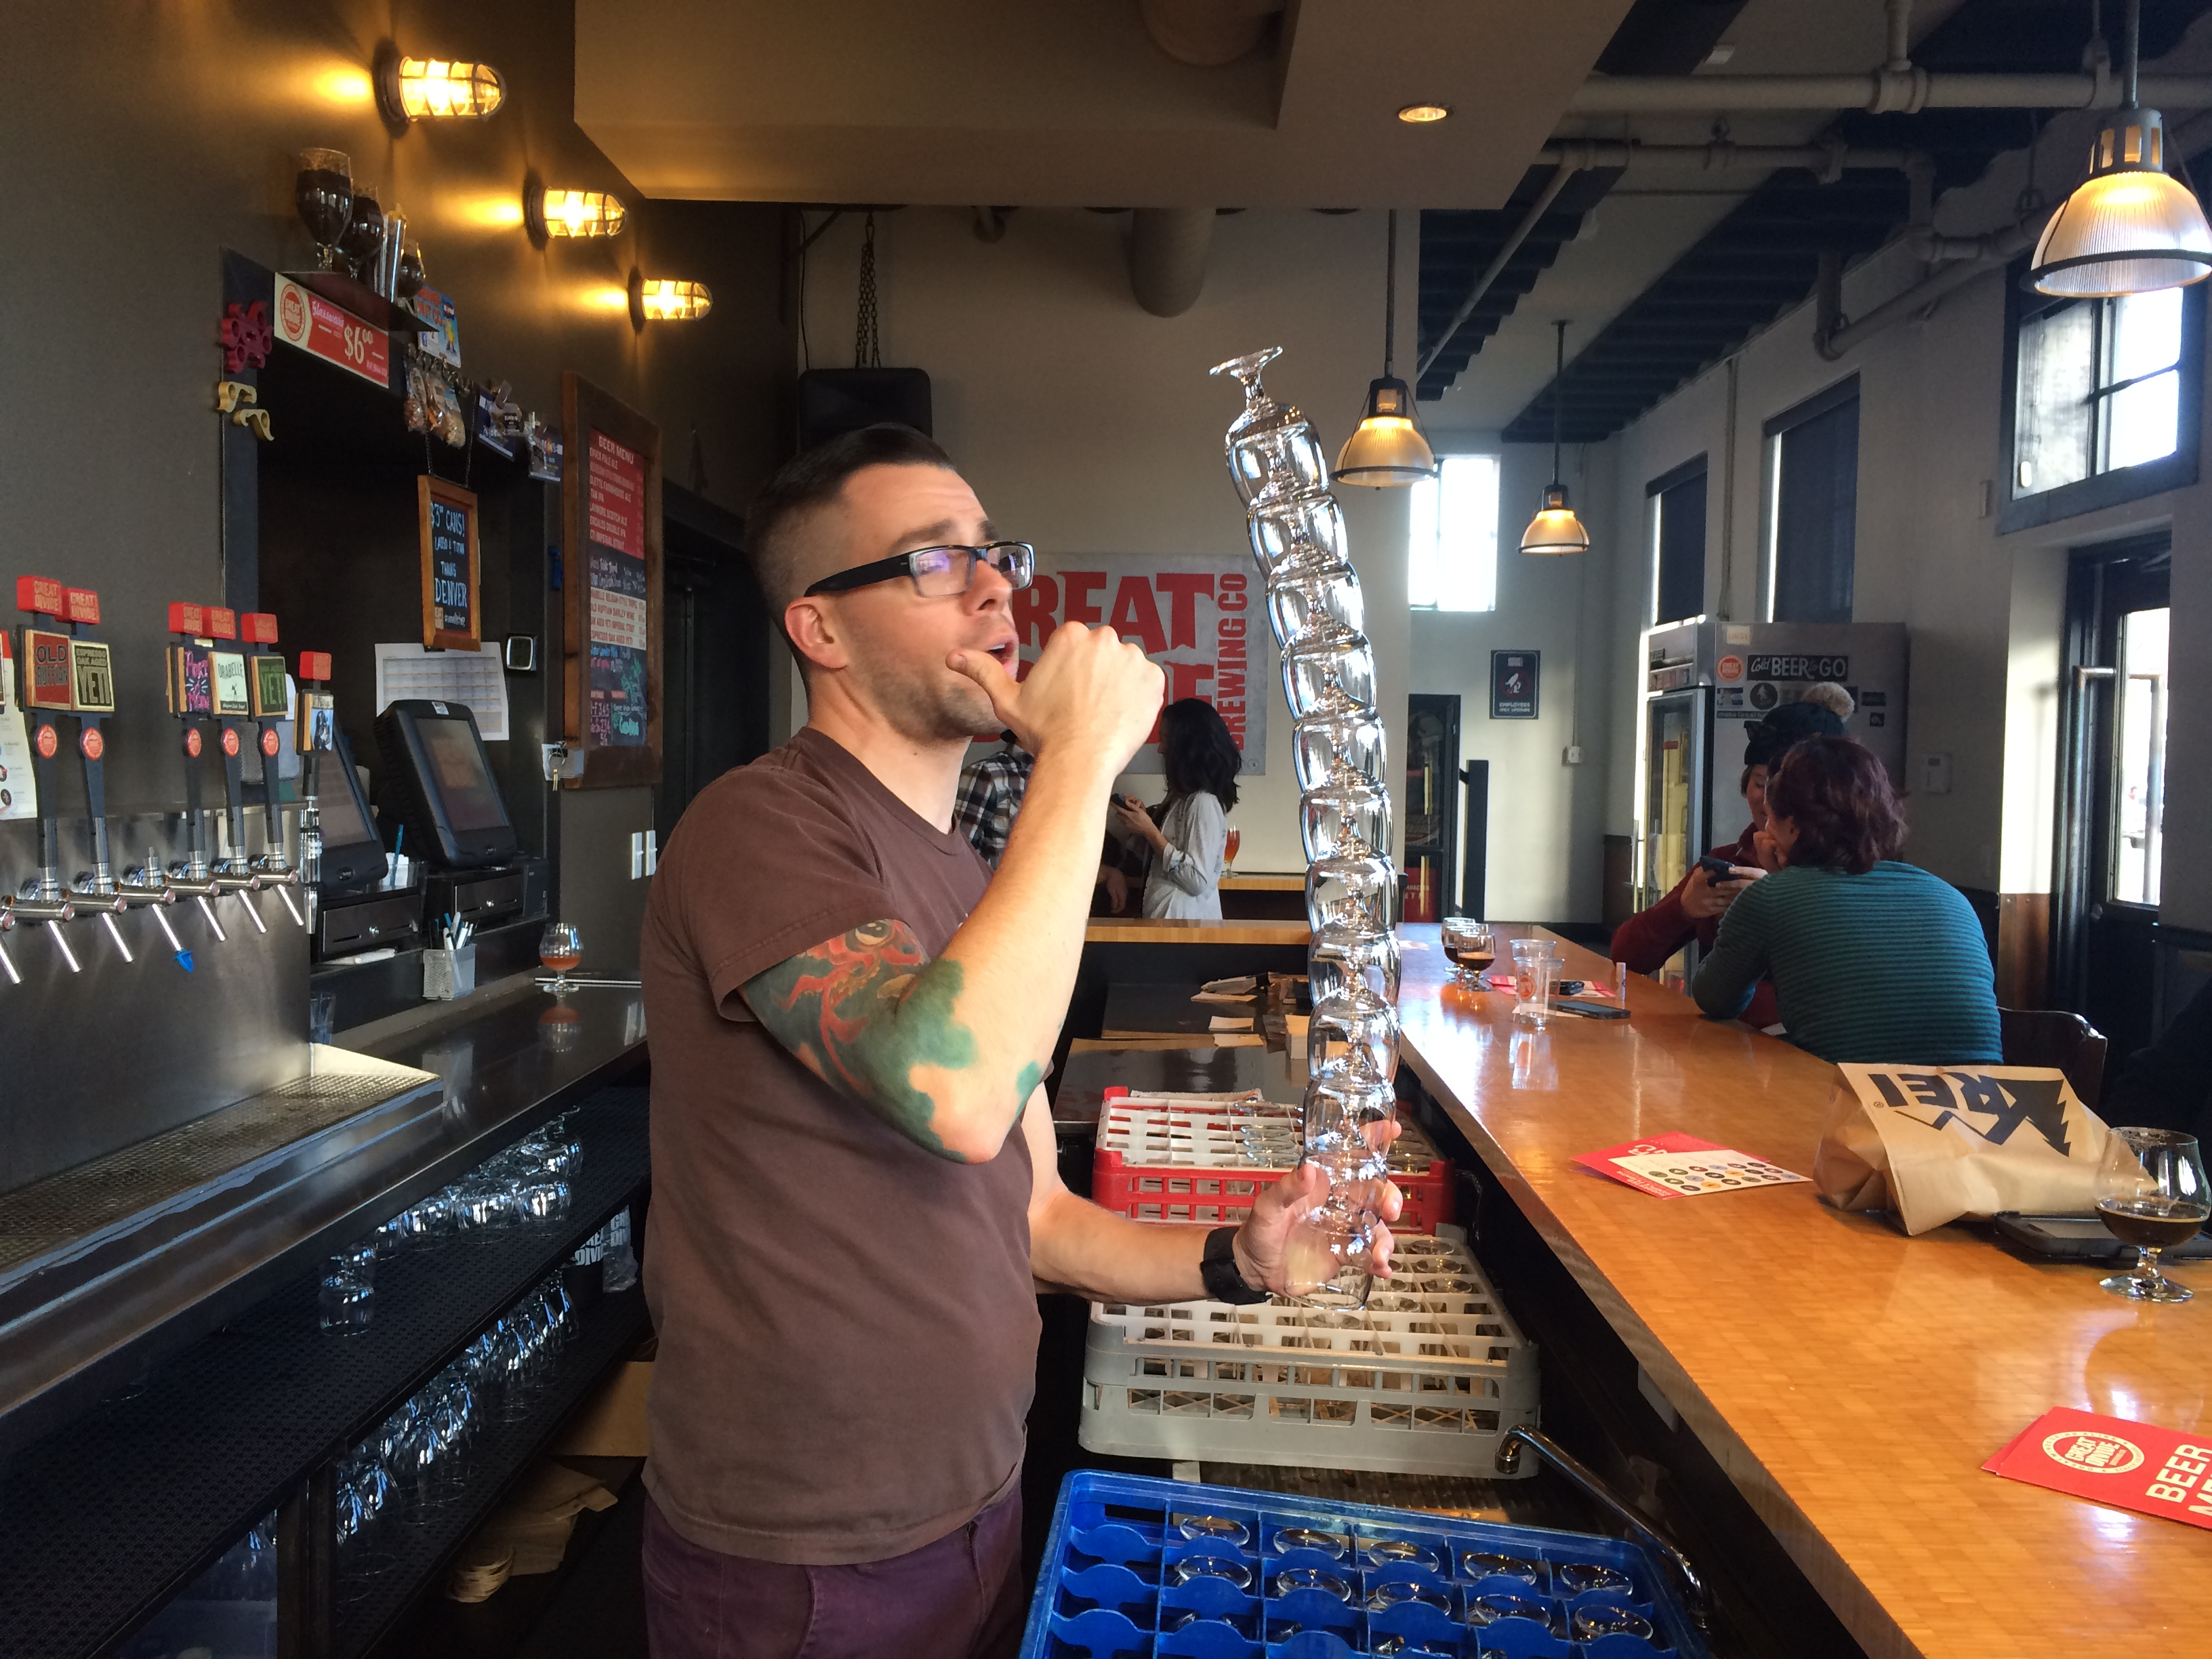 beer-the_great_divide-denver-co-microbrewery-bar-tf_tour__34_